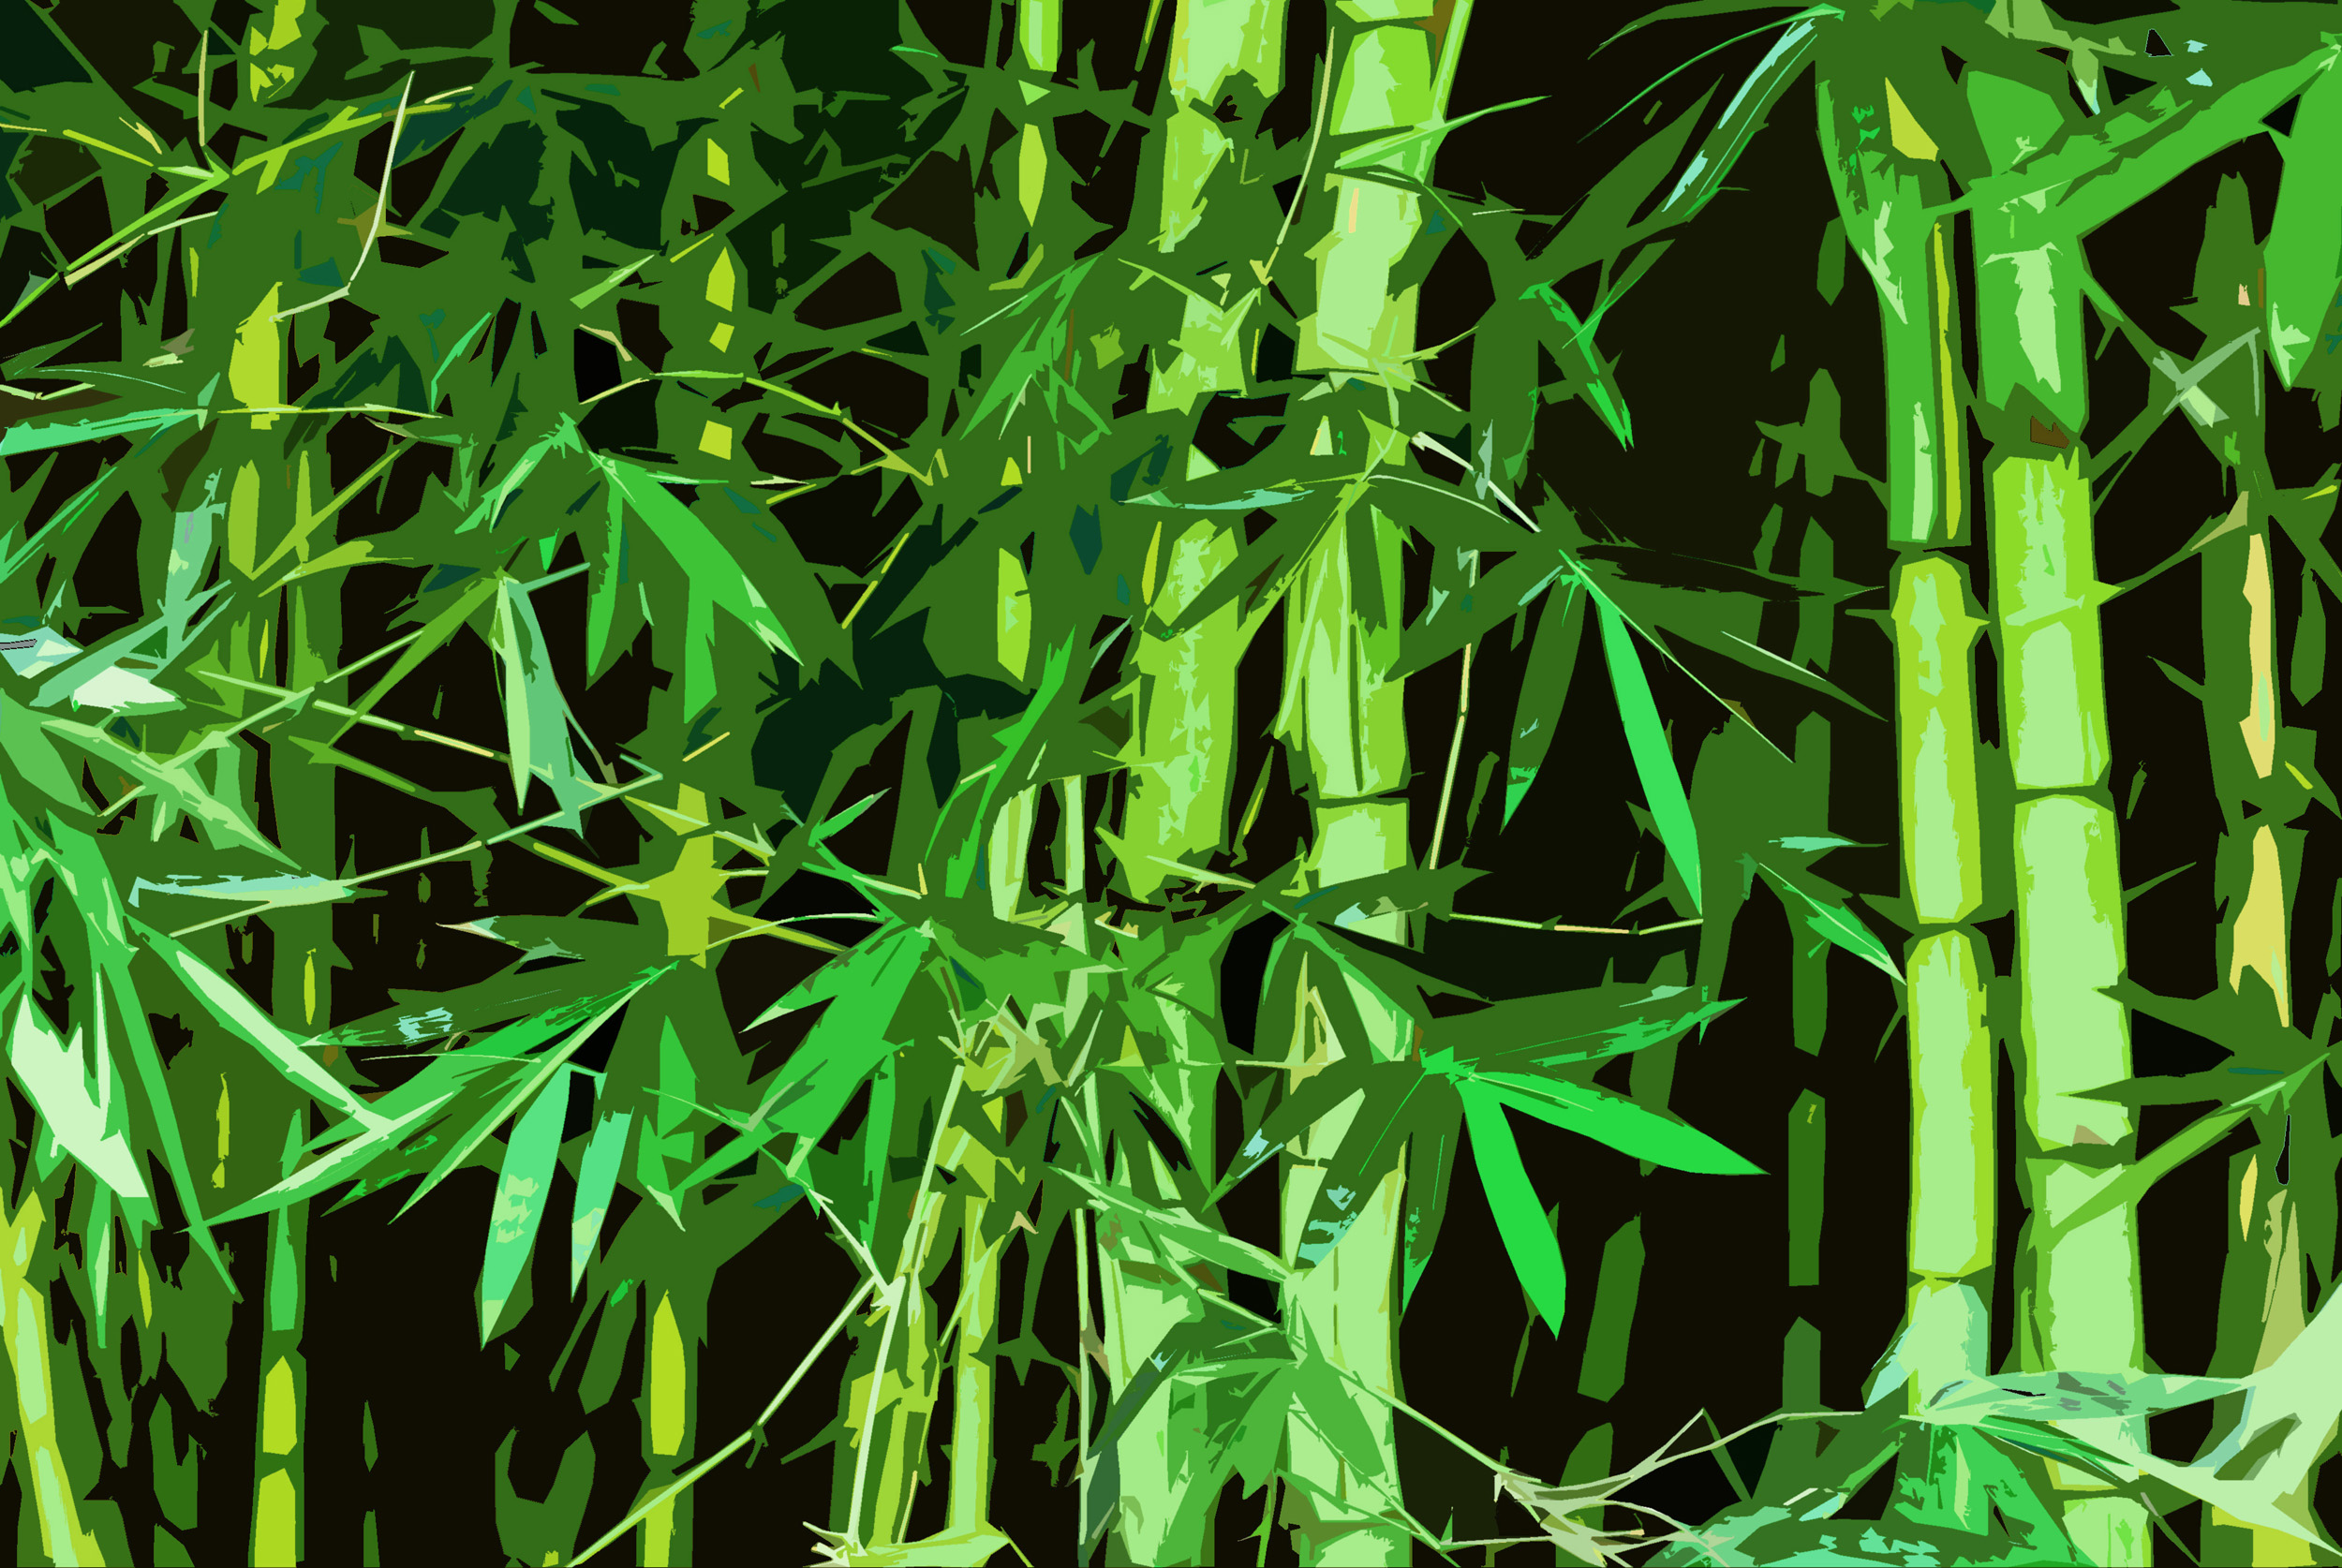 Light Effect Hd Wallpaper Free Stock Photo 3003 Graphic Bamboo Freeimageslive